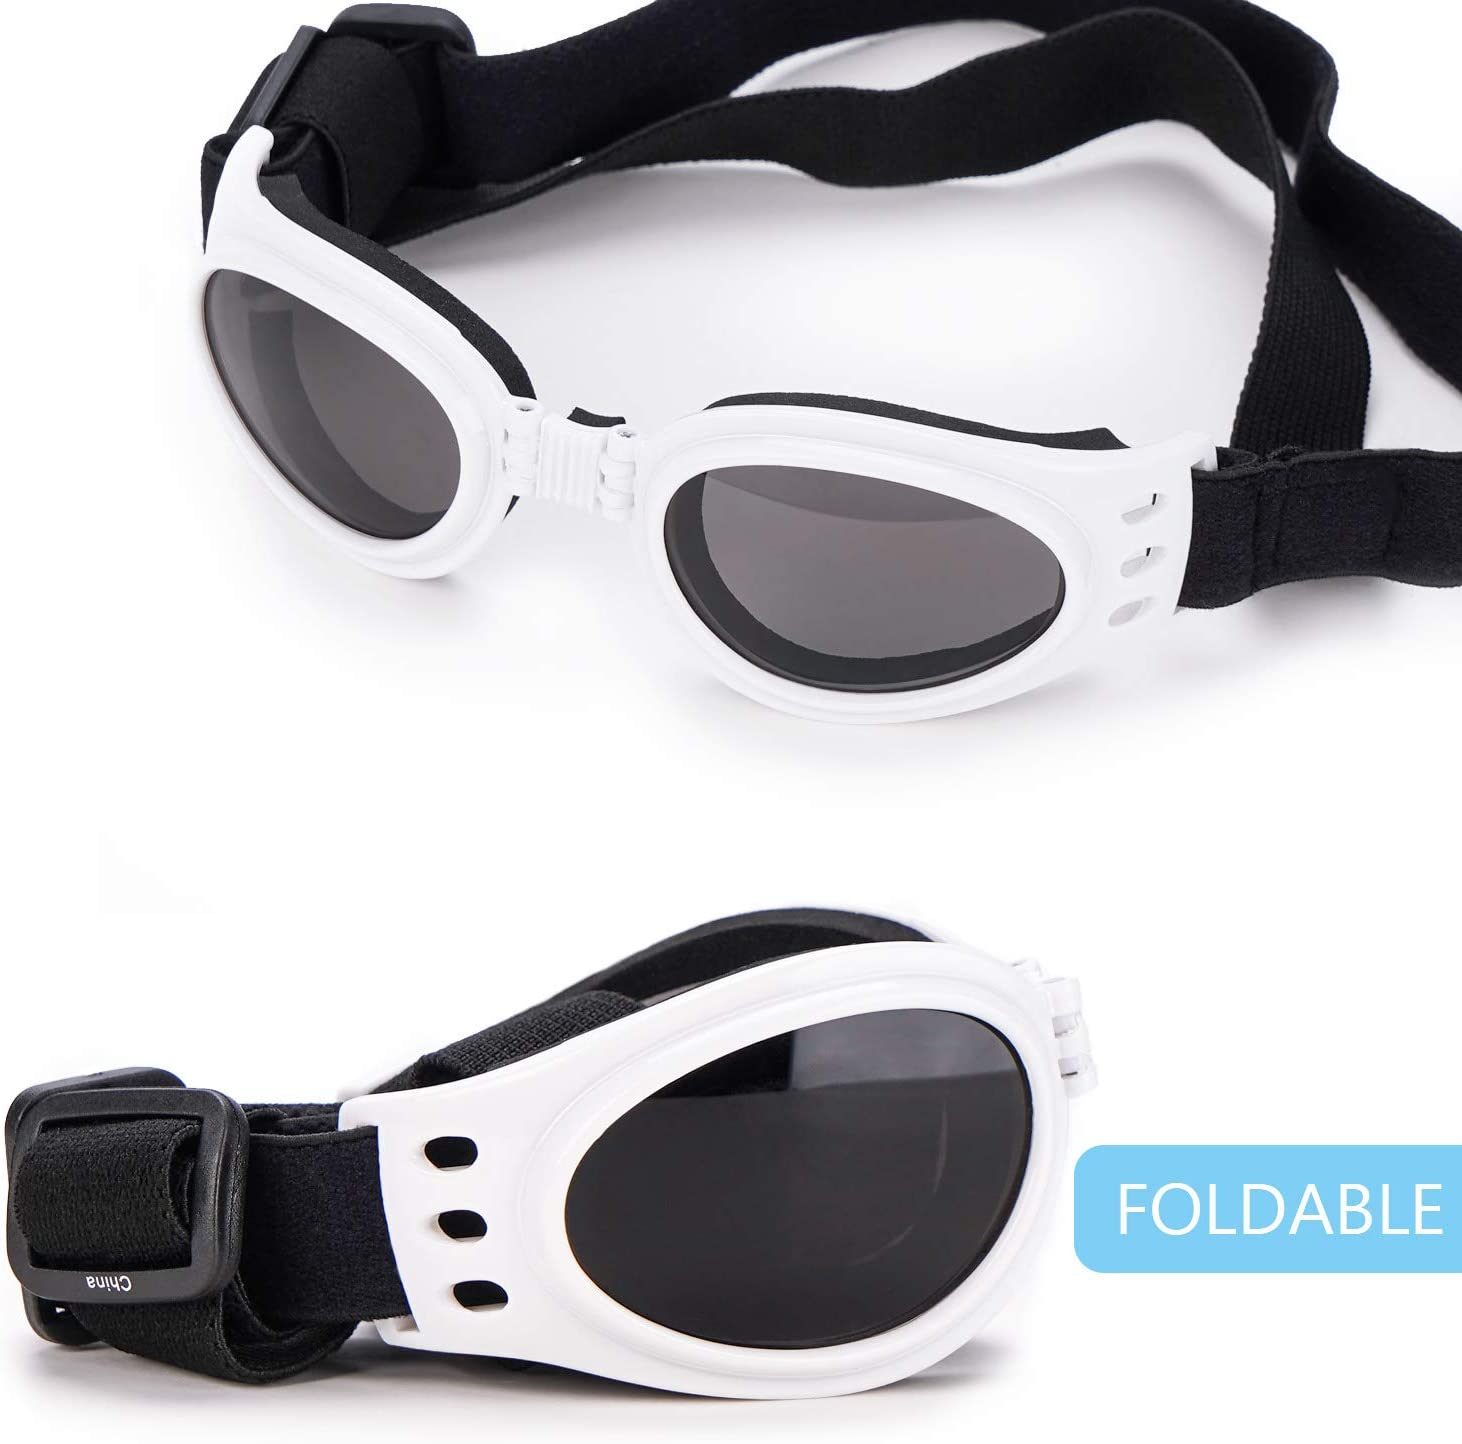 Anti-Fog /& Windproof Pet Goggles Sun Glasses Eye Glasses for Small Medium Large Dogs Puppies Cats Car Rides Eye Protection Dog UV Glasses with Chin Strap Adjustable Petarty Pet Sunglass with Strap